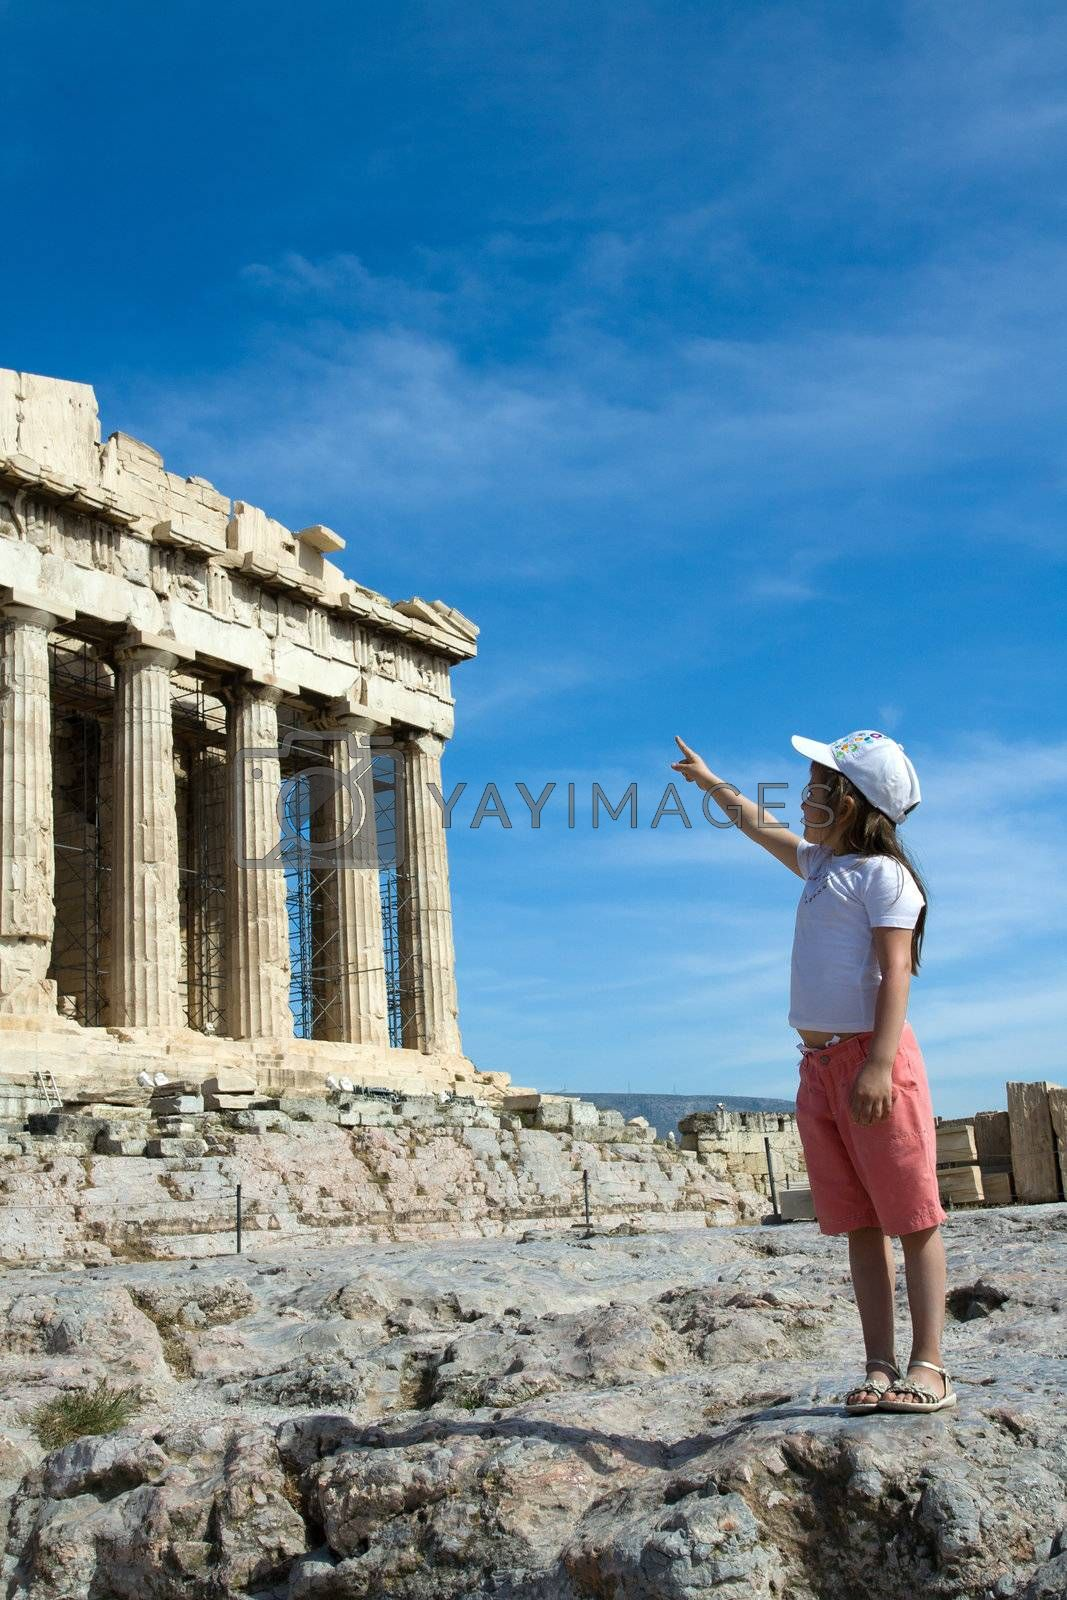 Little Child points to Facade of ancient temple Parthenon in Acropolis Athens Greece on the blue sky background